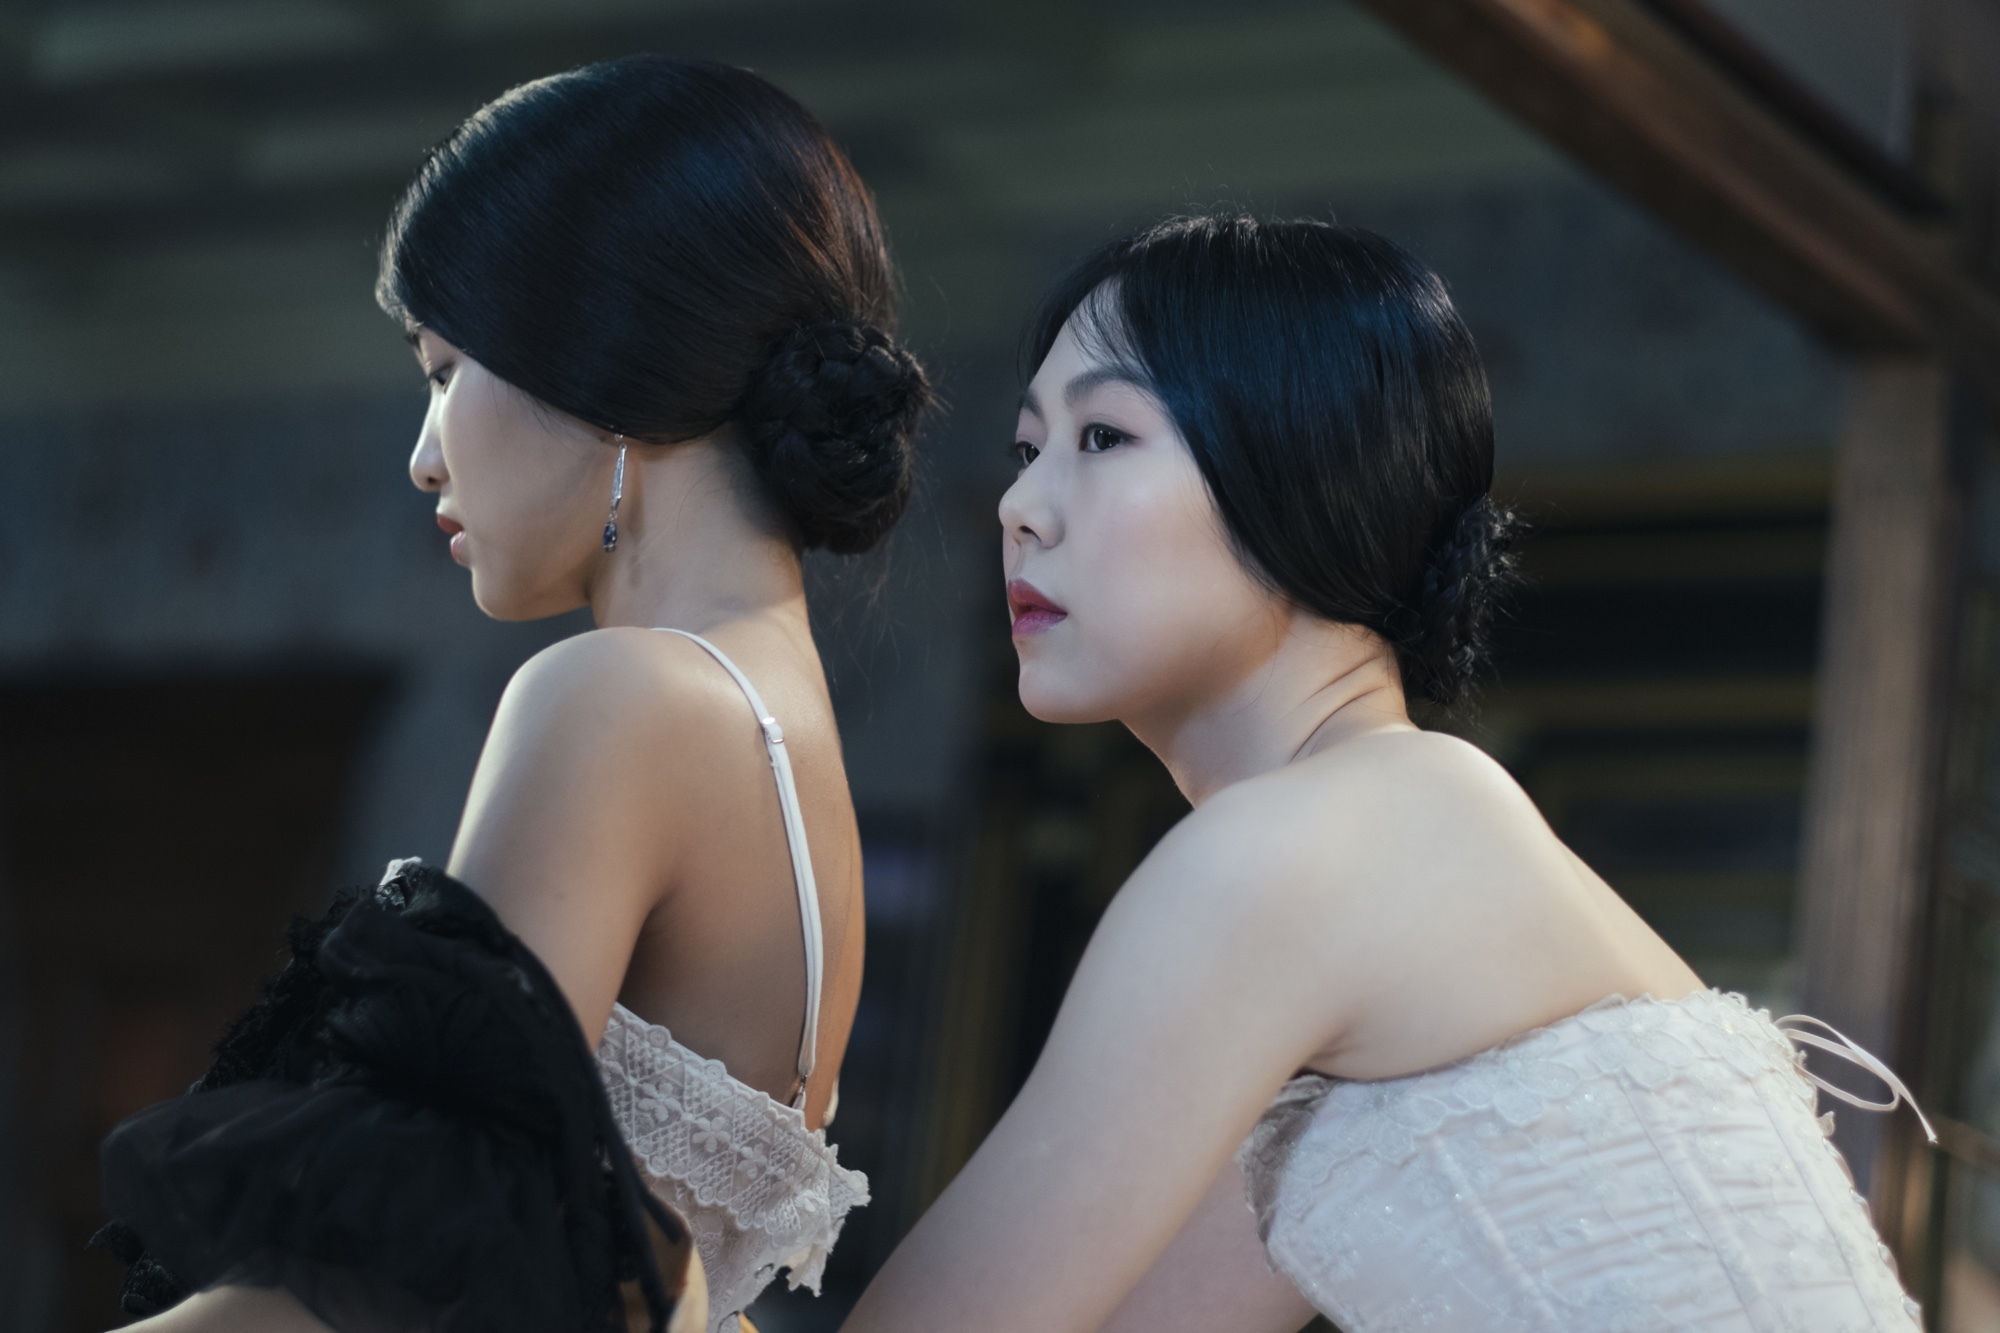 Movies to watch during Pride: the handmaiden